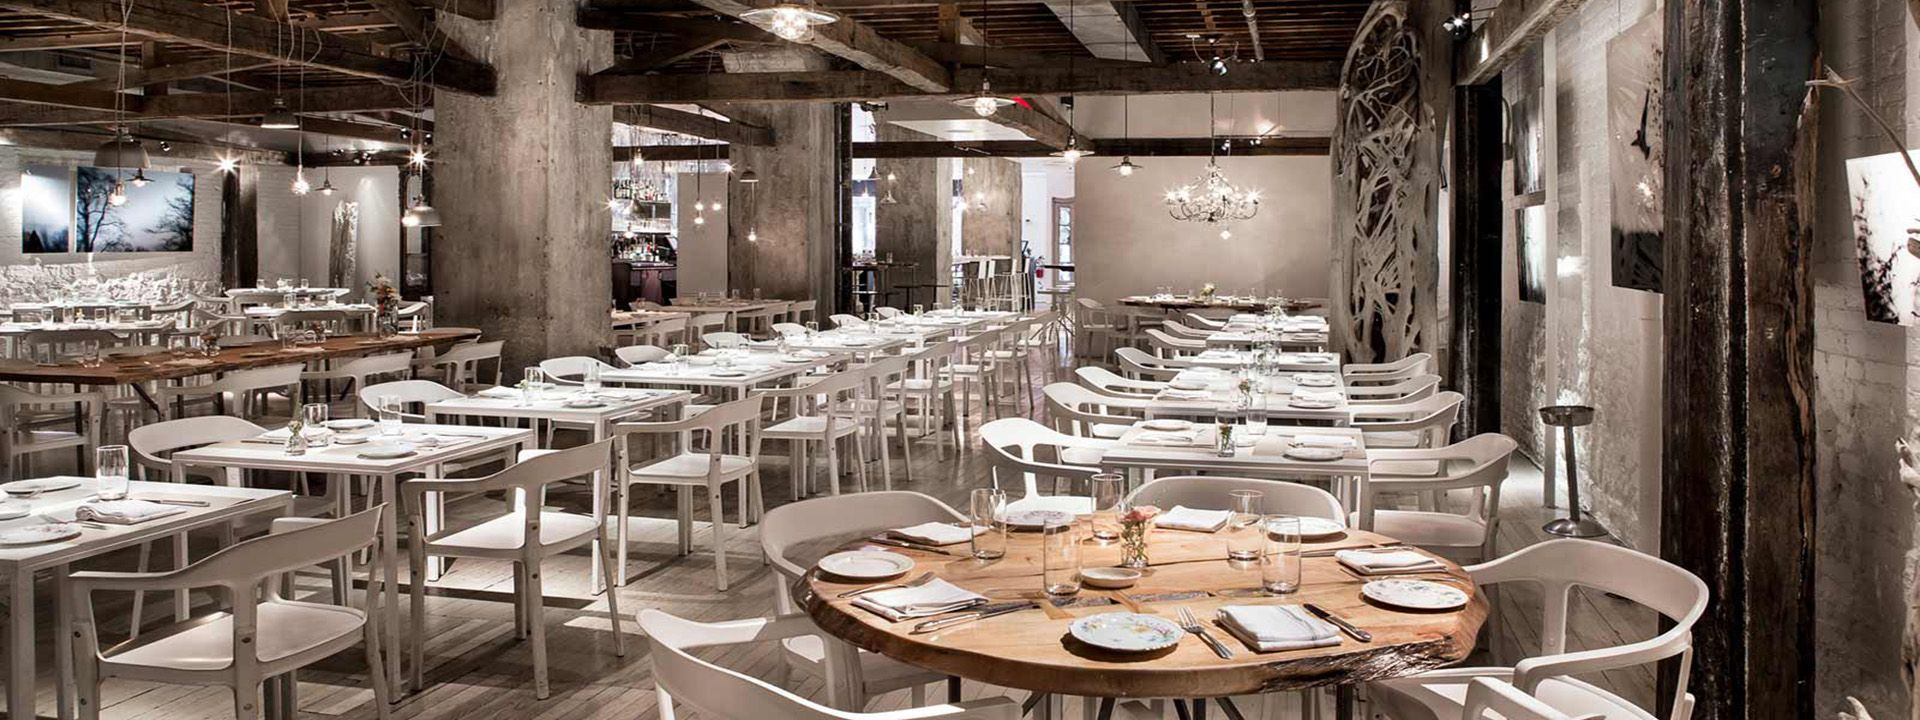 Charming ABC Cocina, Jean Georgesu0027s Latin Sequel To ABC Kitchen | Nyc Restaurants,  Restaurants And Kitchens